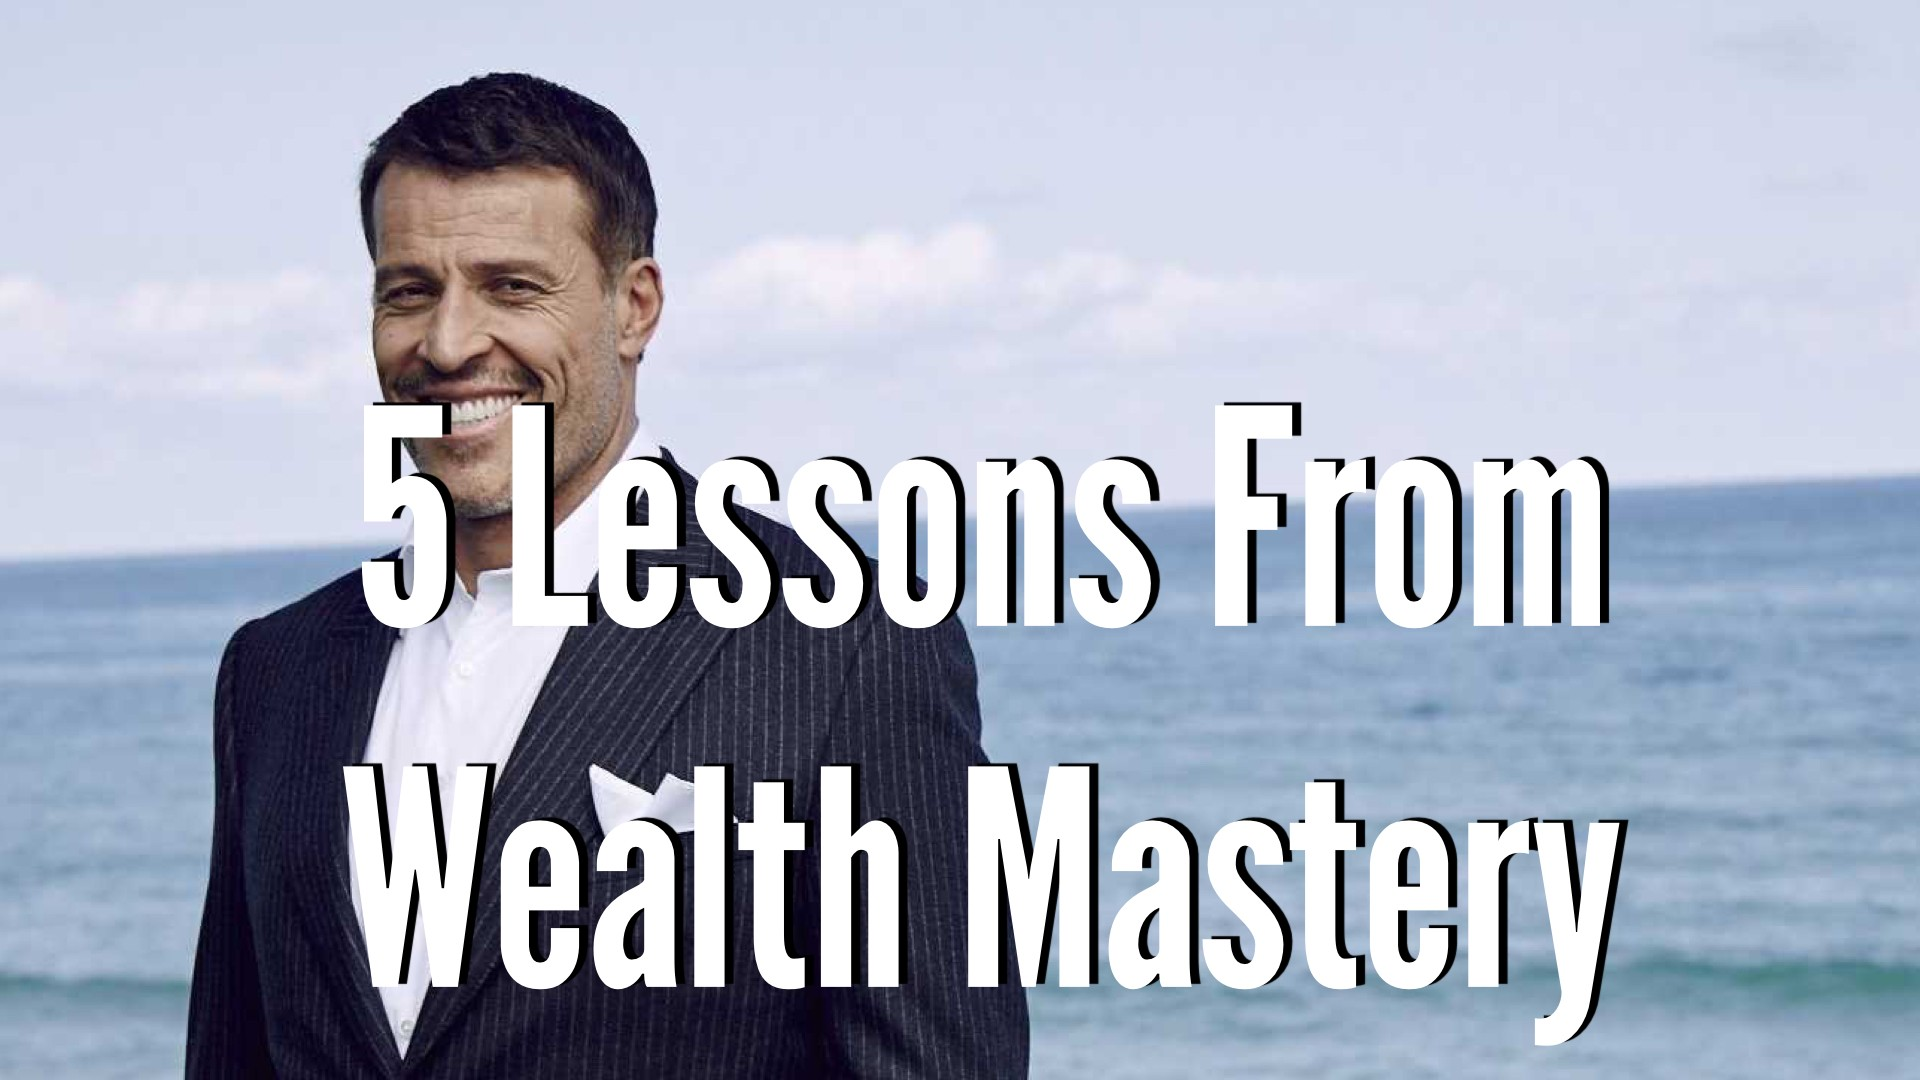 Tony robbins life and wealth mastery 2014 london